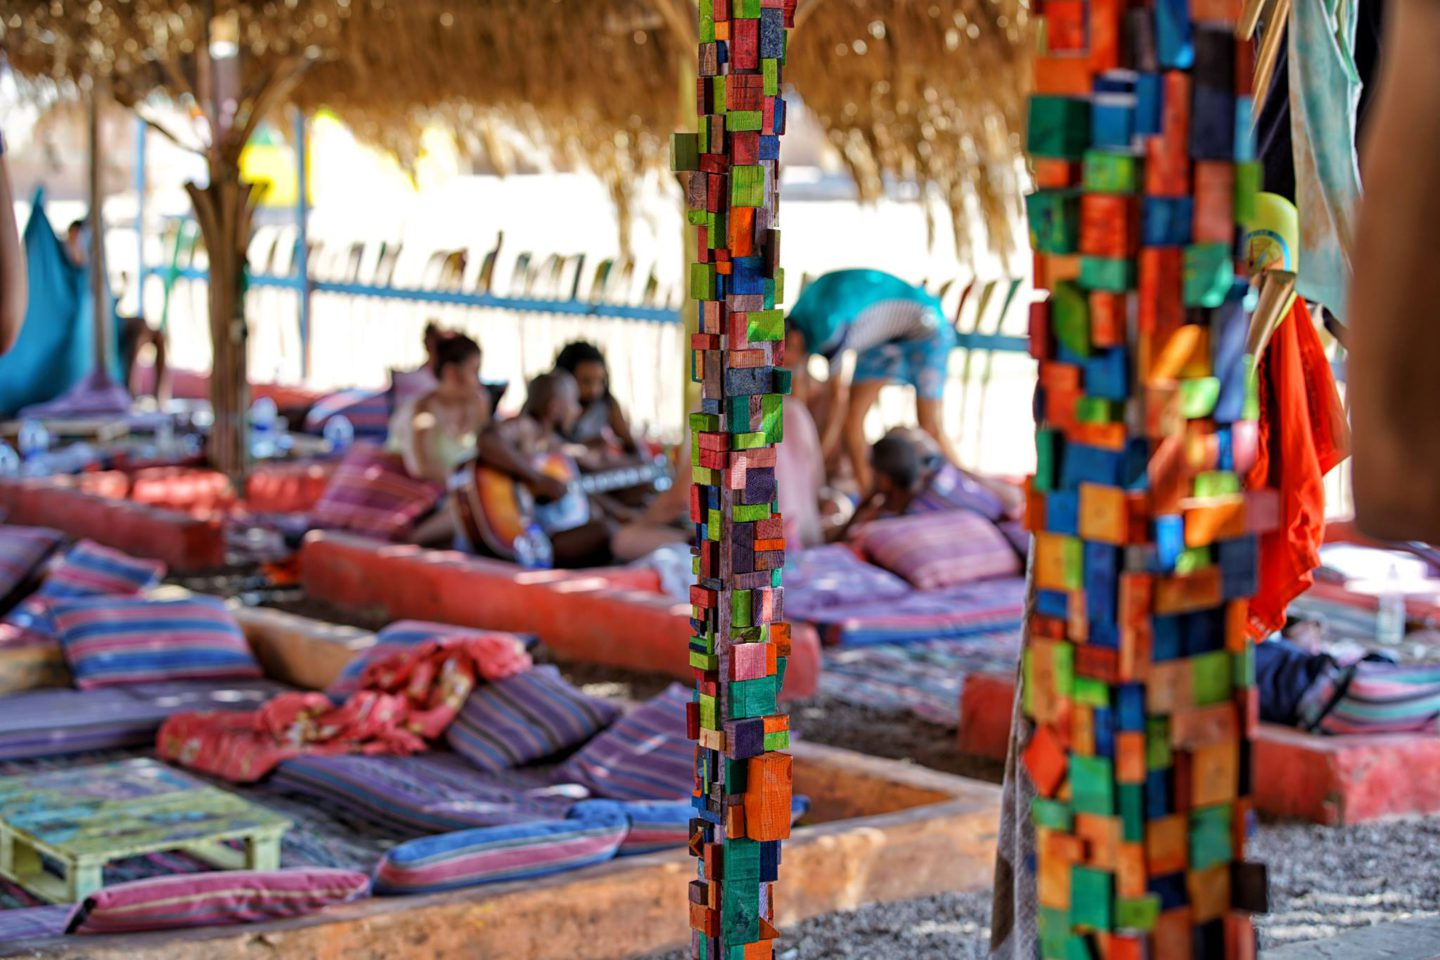 Tourism takes a sustainable turn in South Sinai |The Switchers